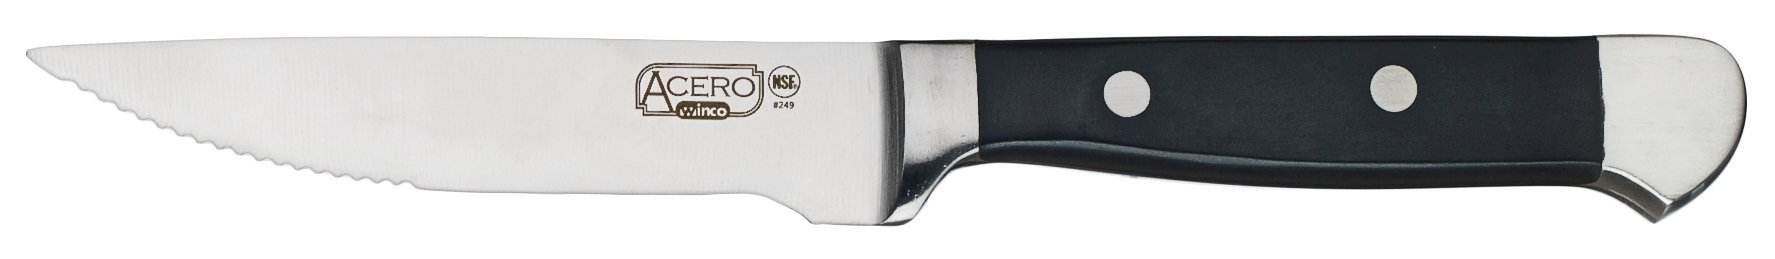 Winco SK-12 12 Piece Bulk Pack Acero Gourmet Steak Knives by Winco (Image #1)